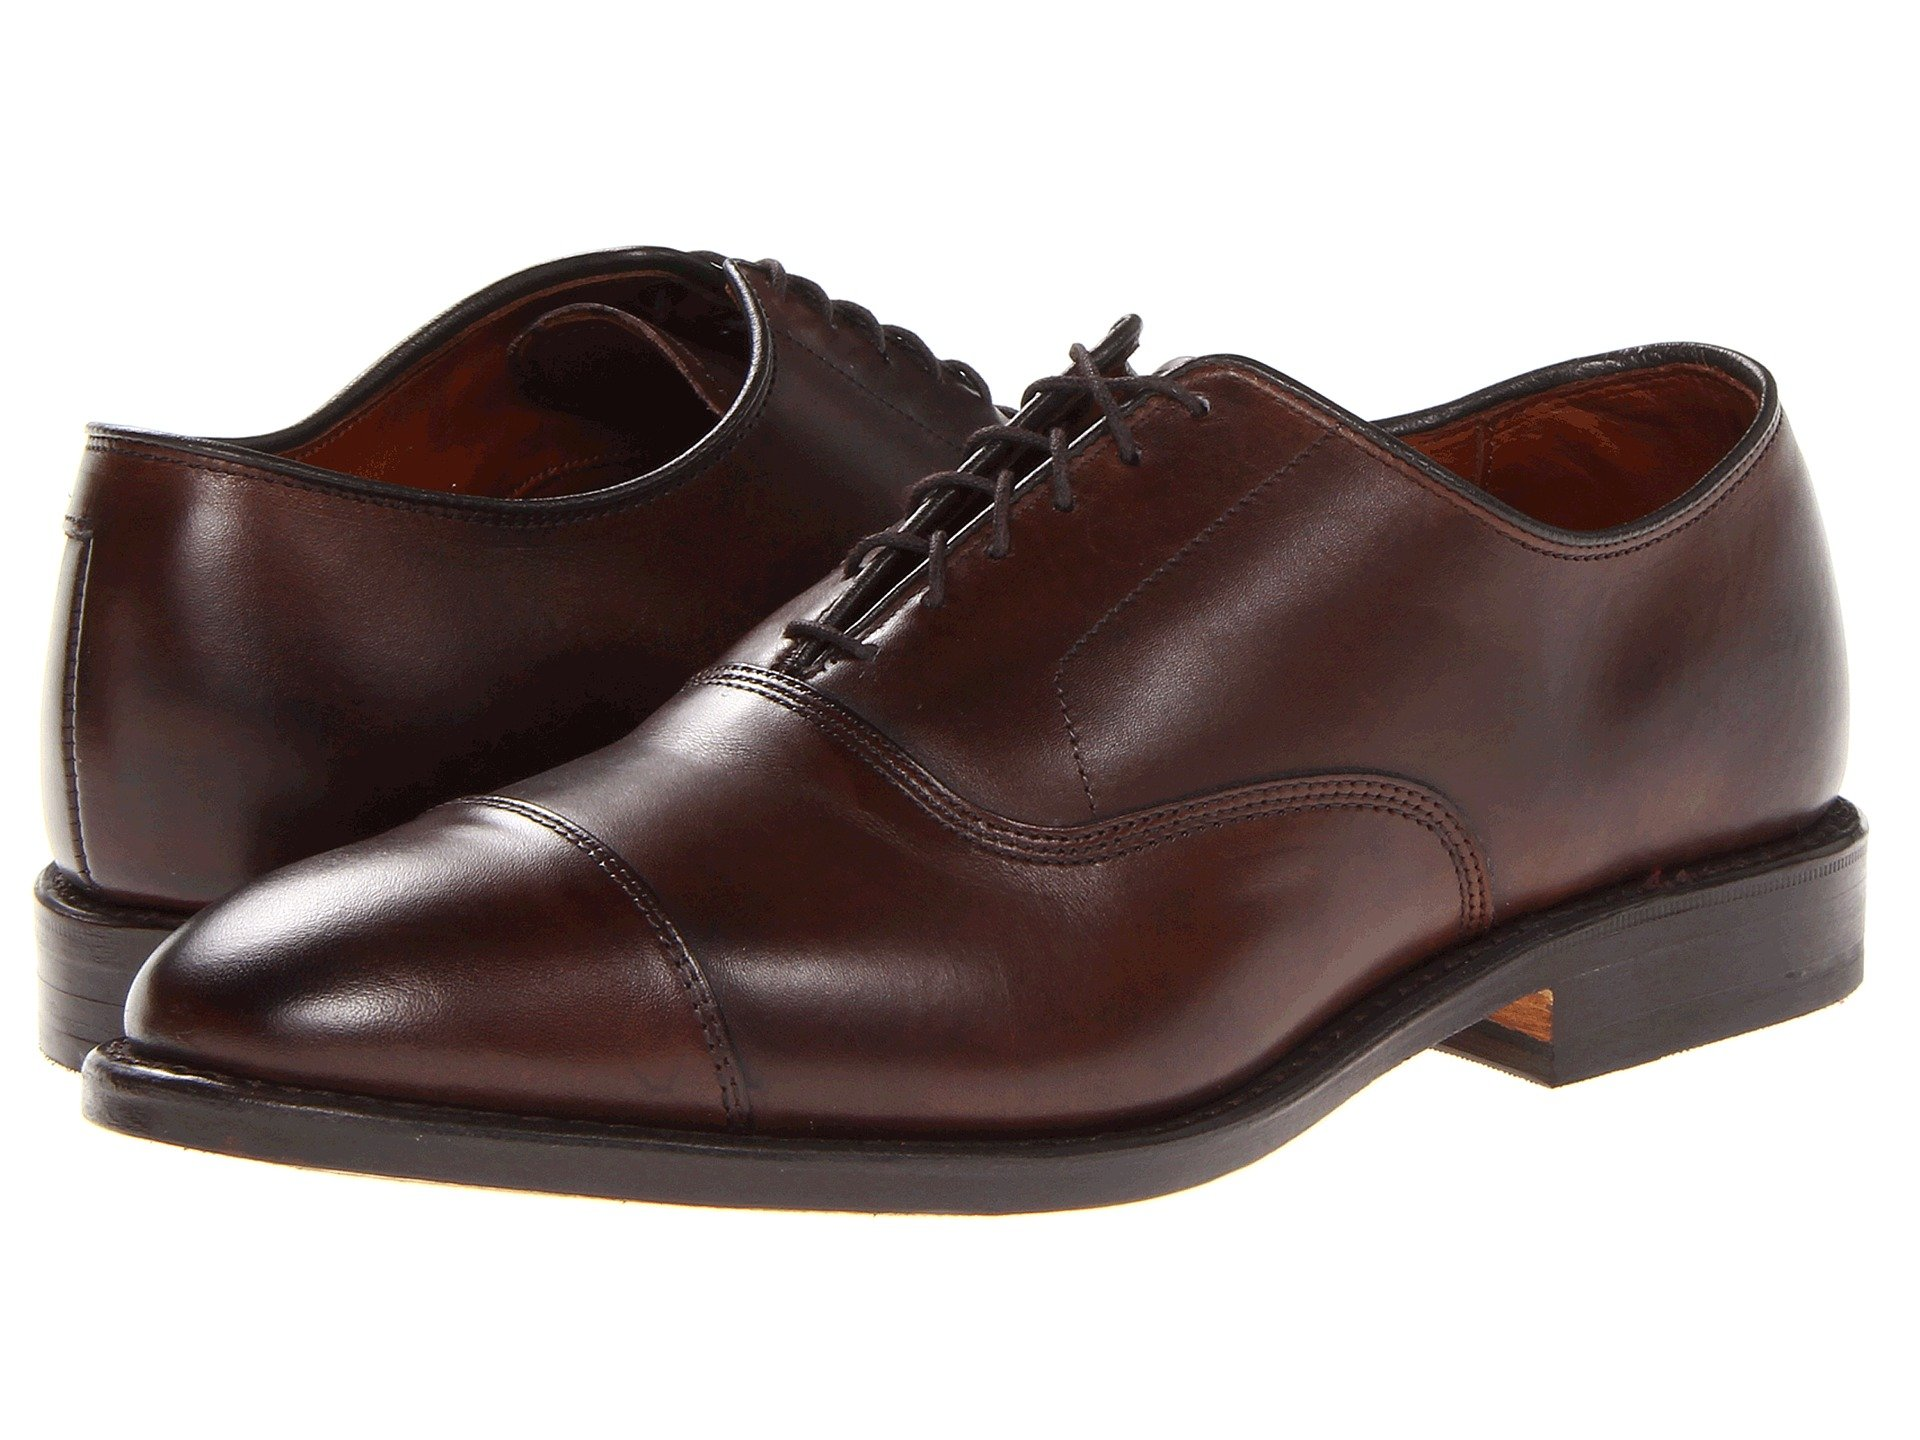 allen edmonds park ave in dark brown - ultimate guide to buying, wearing, and caring for brown dress shoes